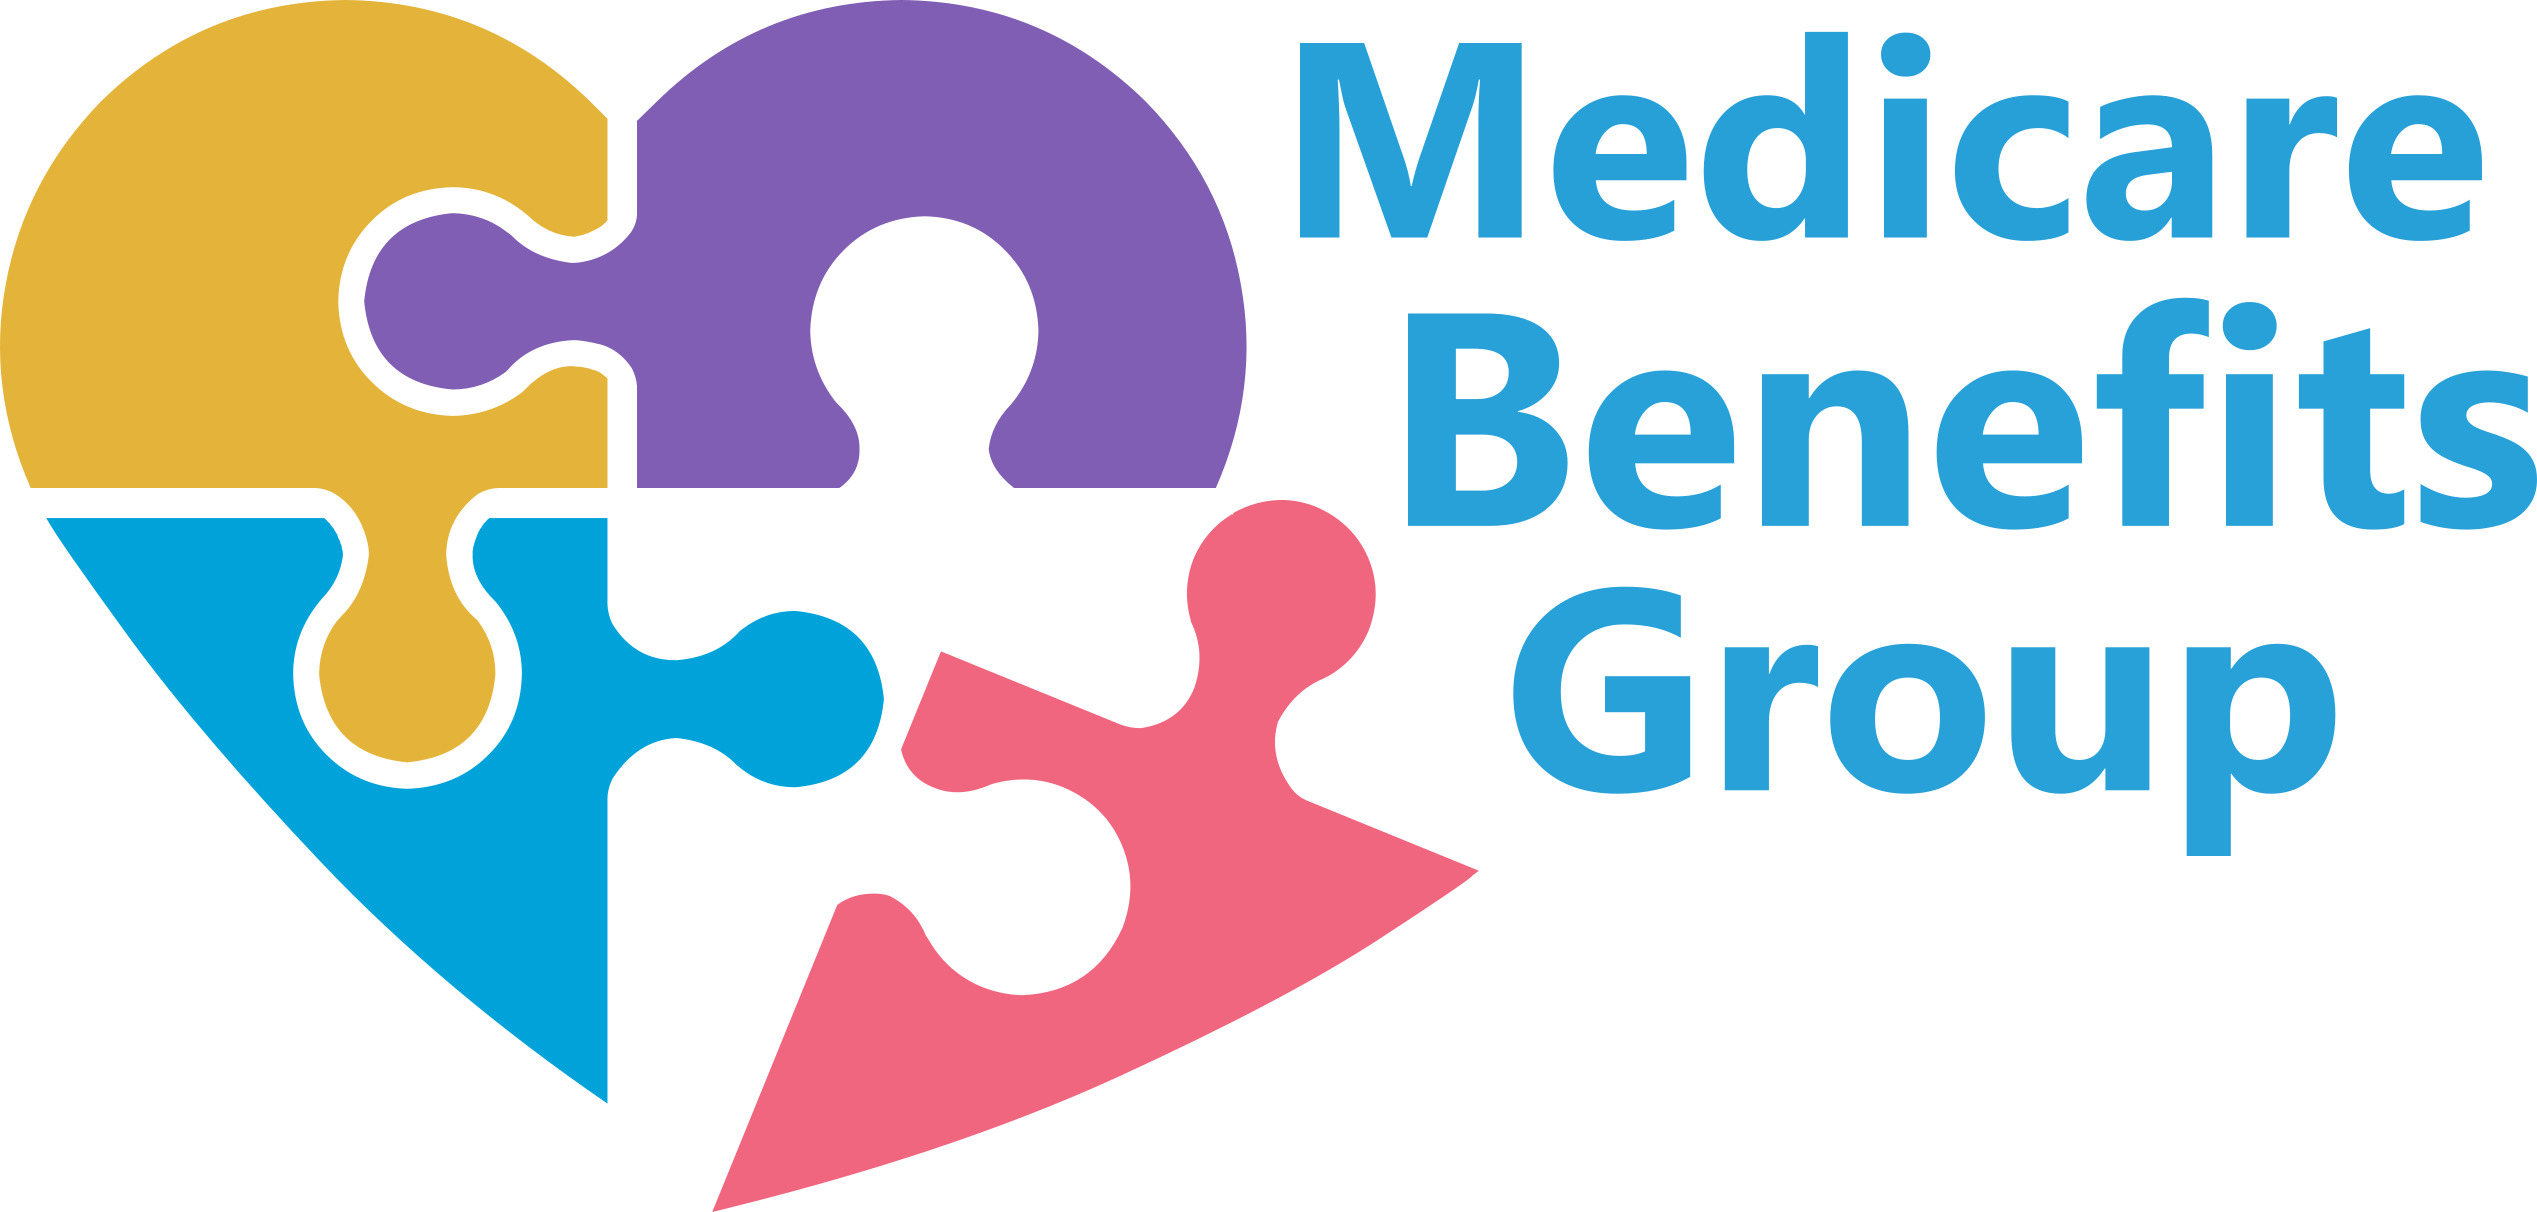 Medicare Benefits Group